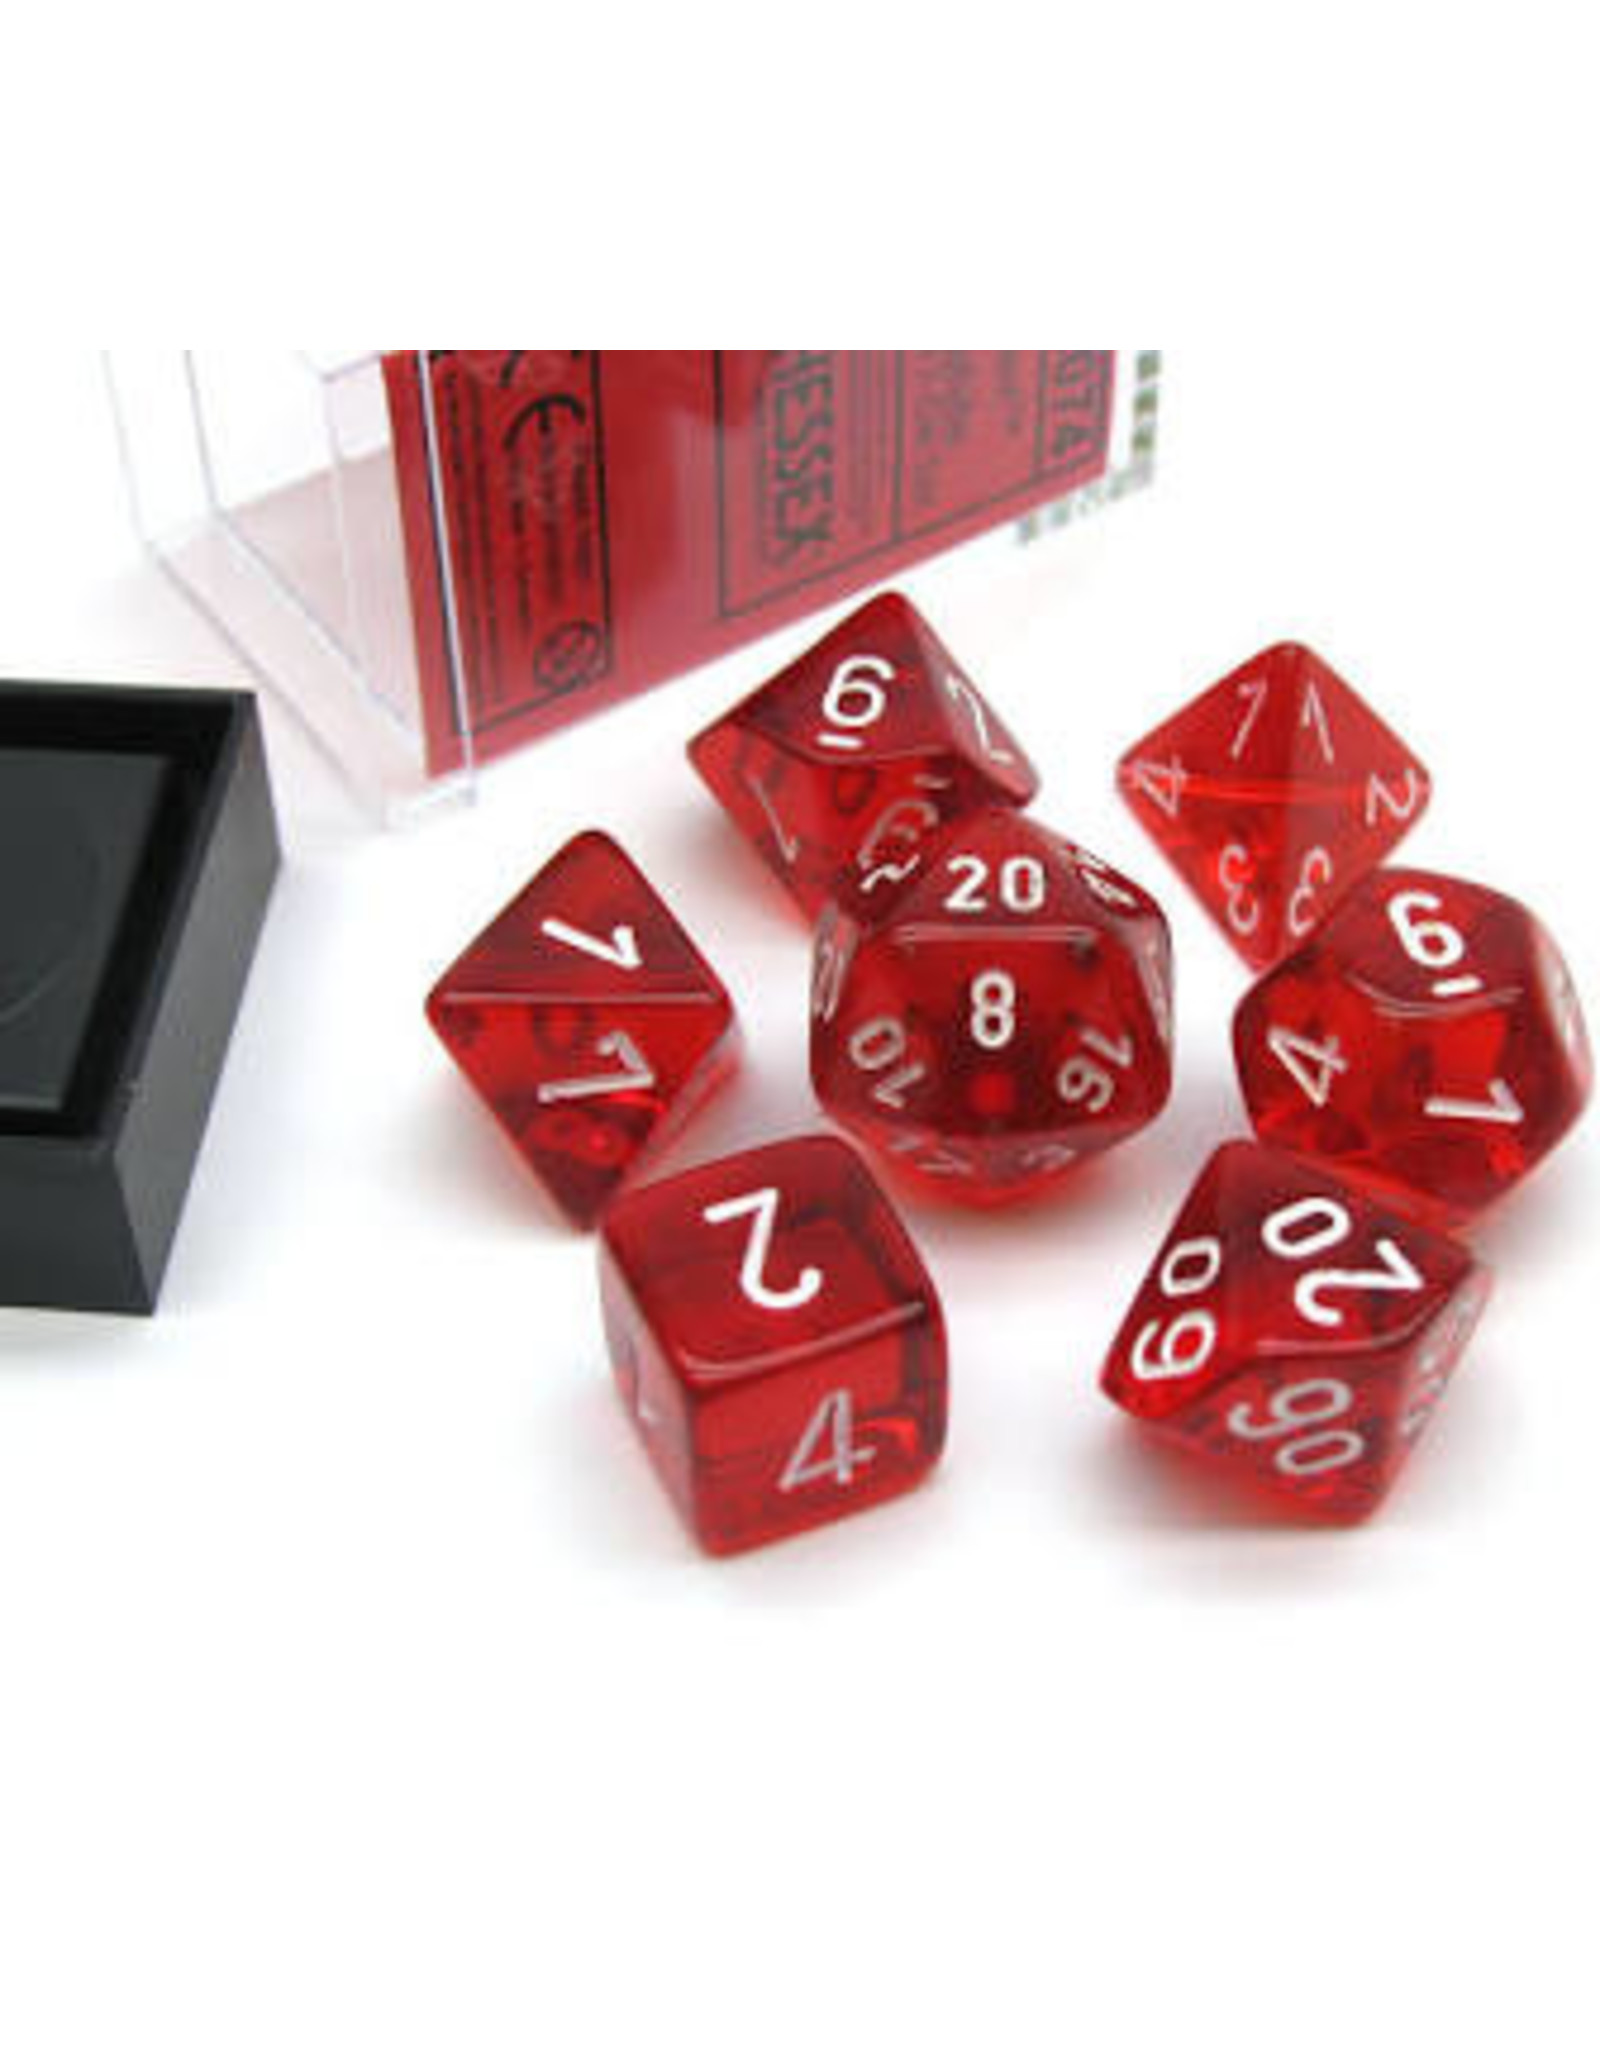 Chessex 7-Set Polyhedral CubeTR RDwh